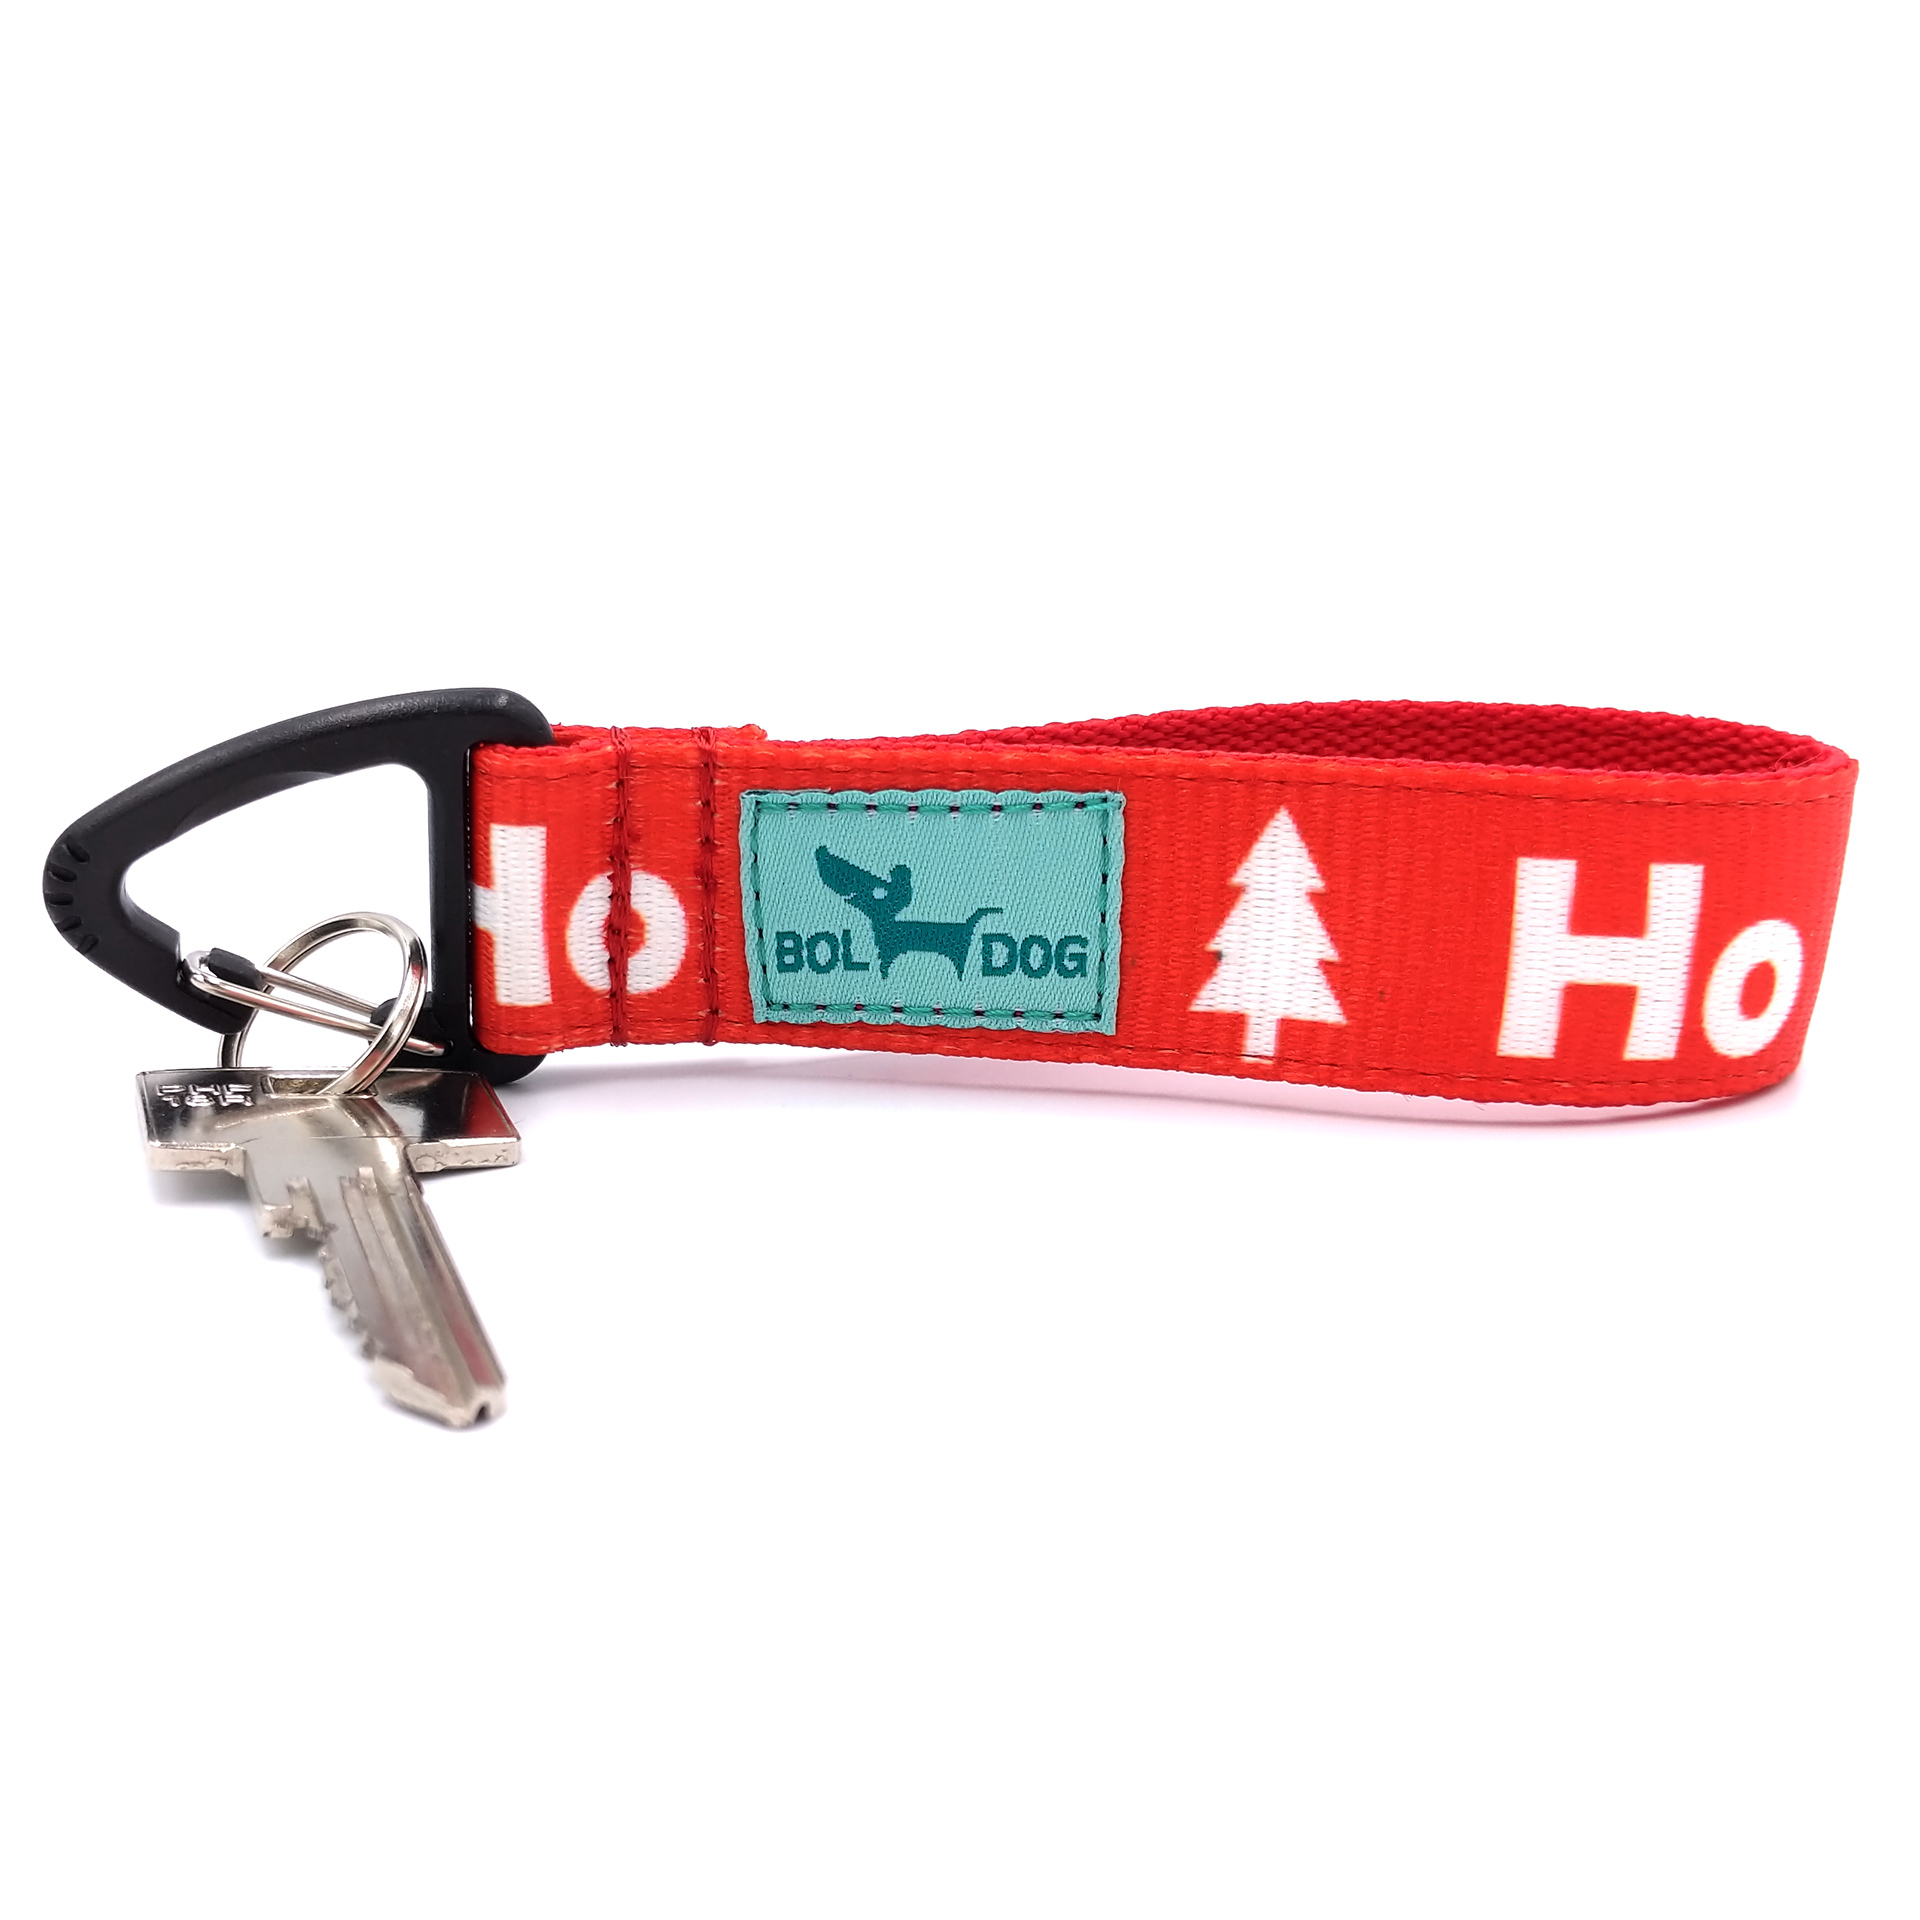 Hohoho key holder